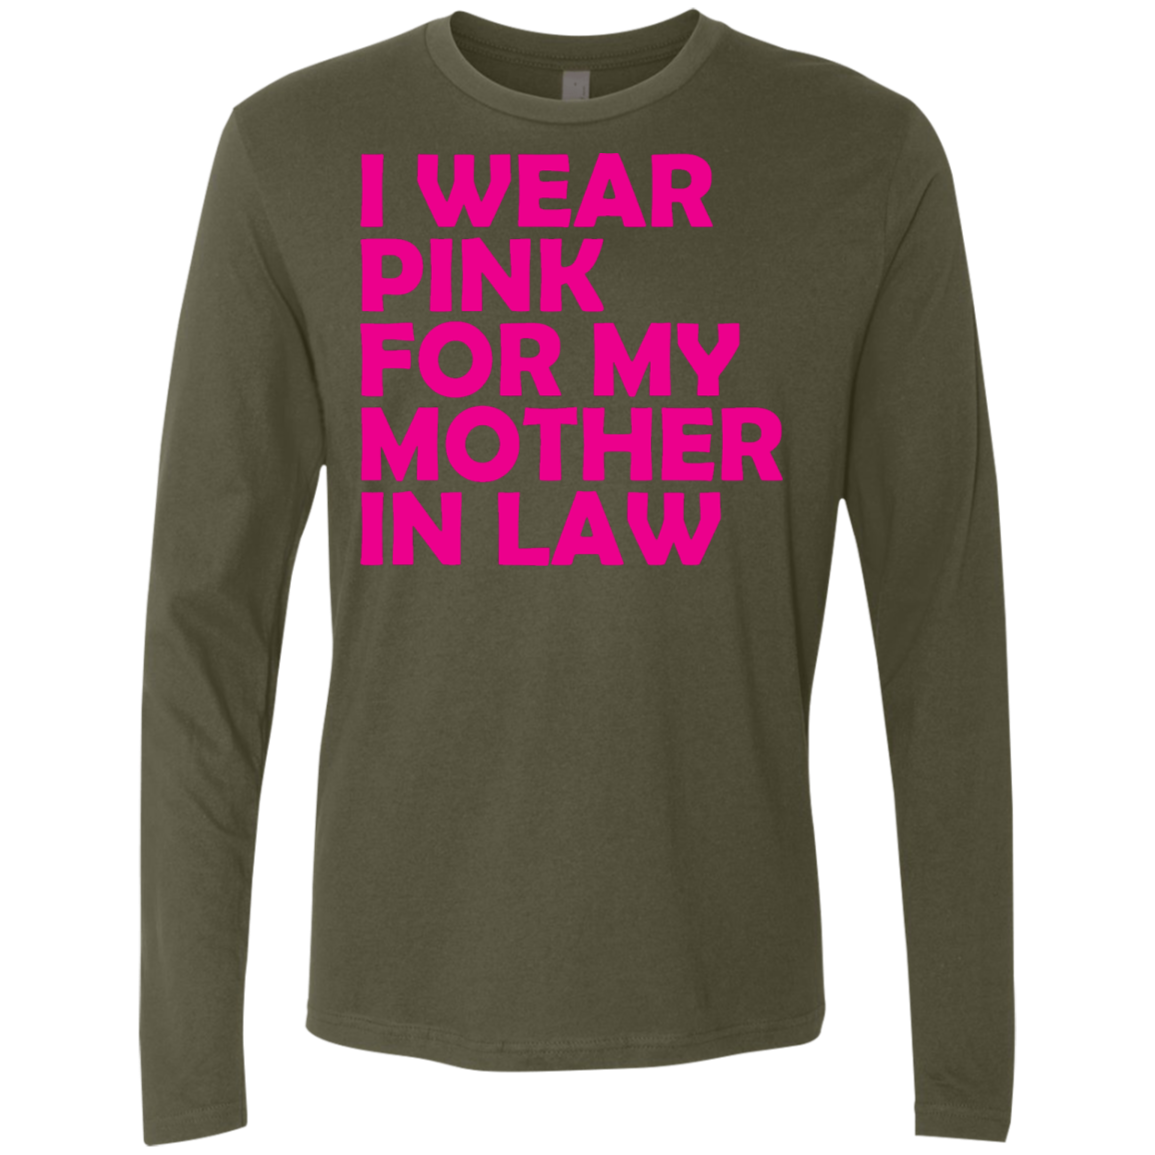 I Wear Pink For My Mother In Law Men's Long Sleeve Tee